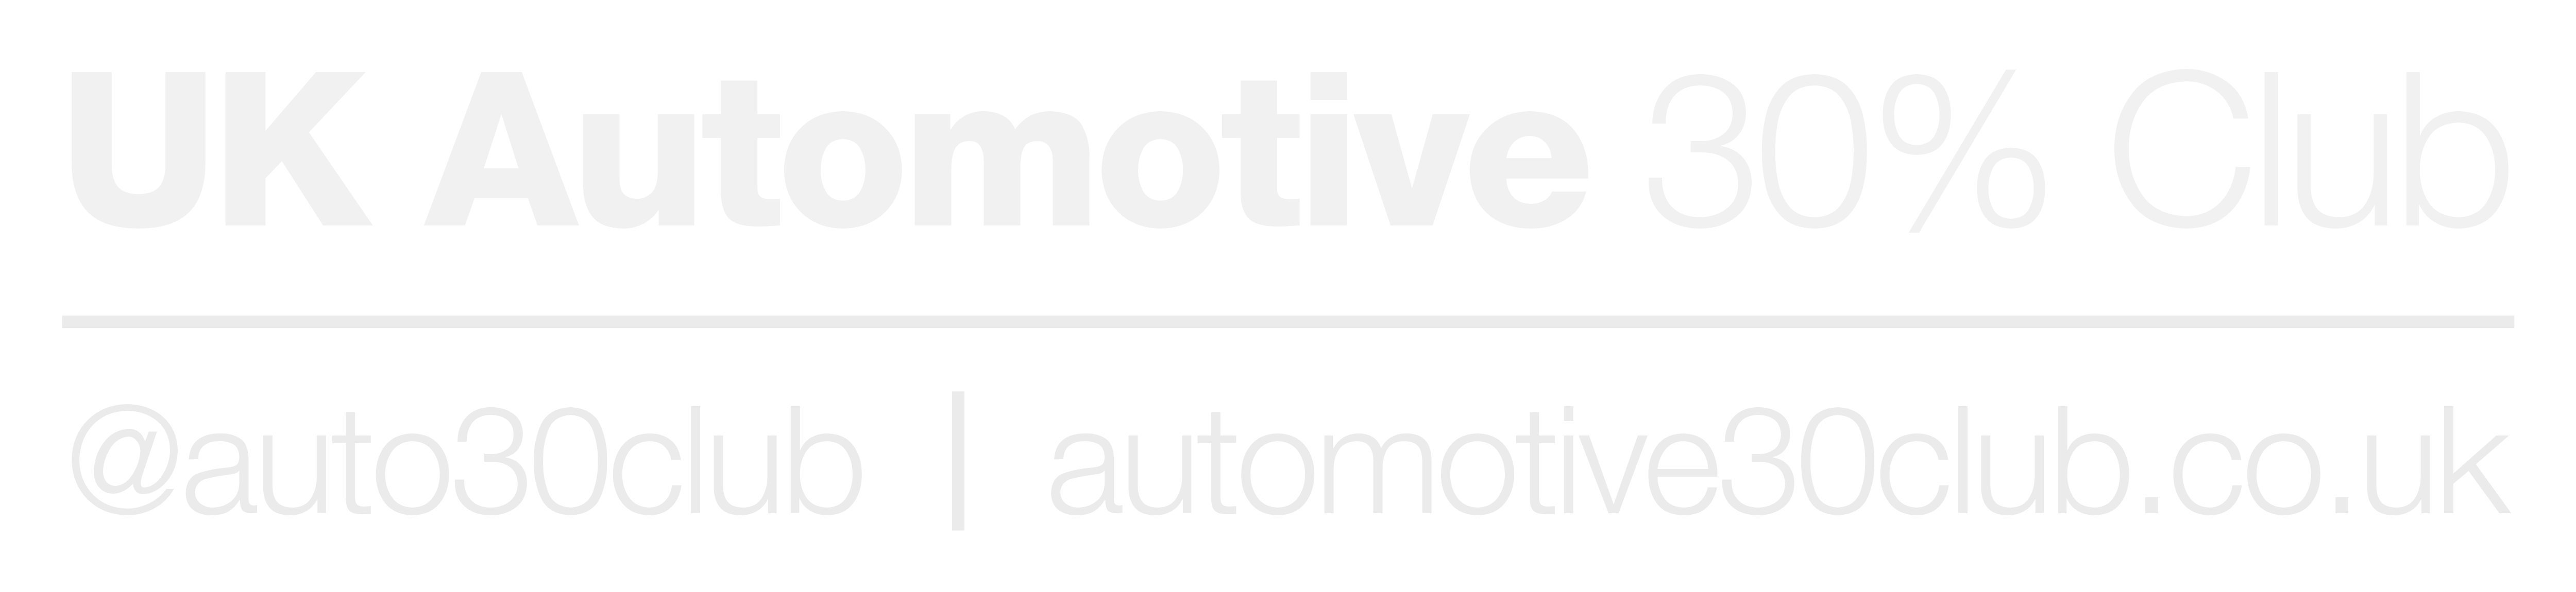 UK Automotive 30% Club (logo)